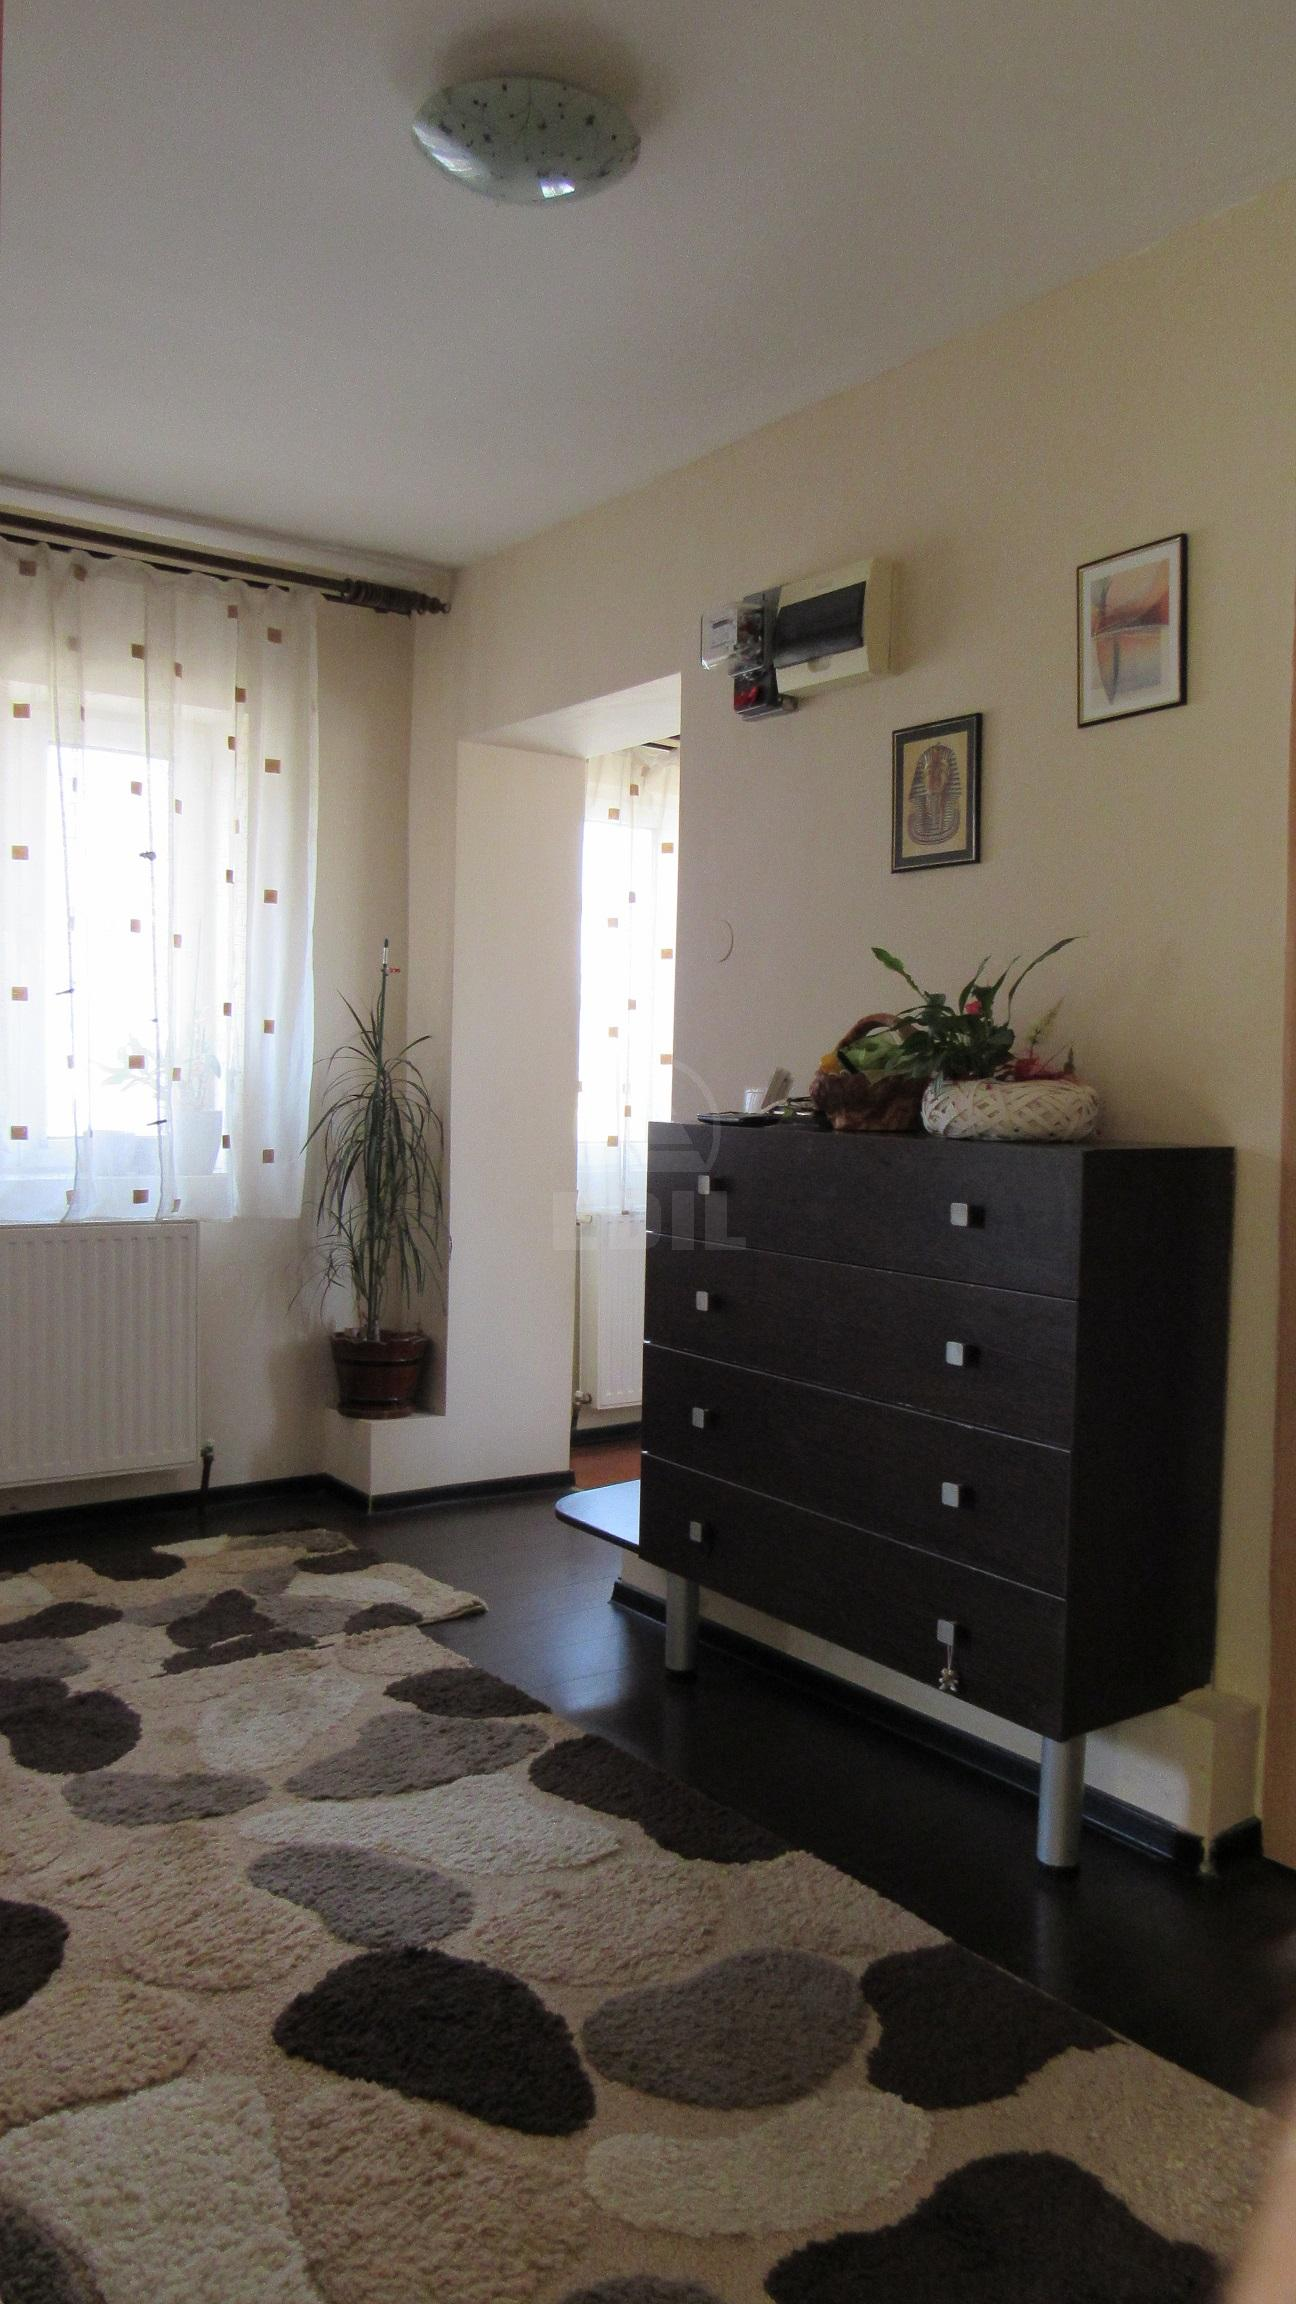 House for sale 2 rooms, CACJ282704-4